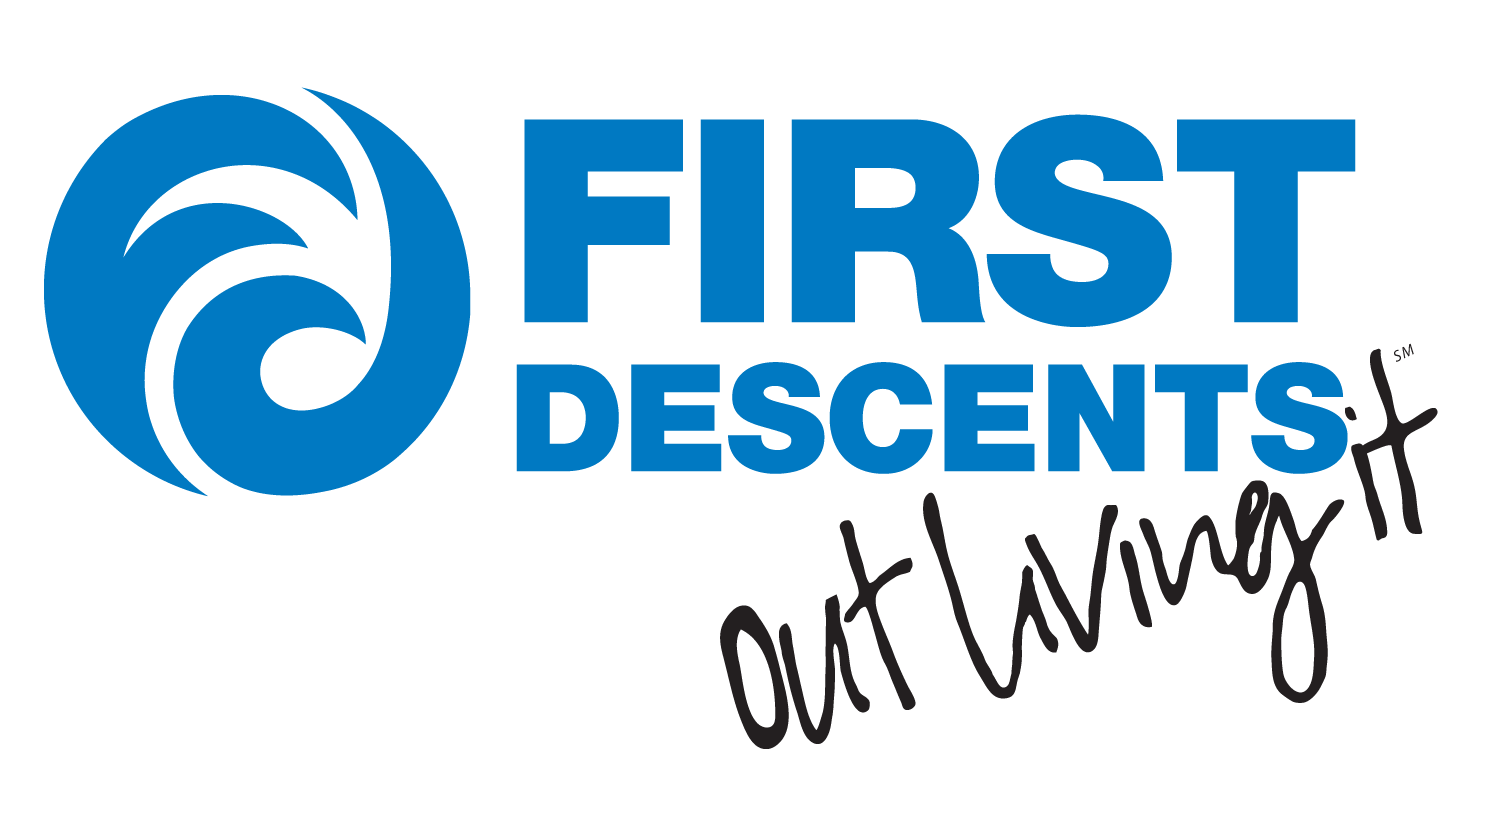 first-descents.png